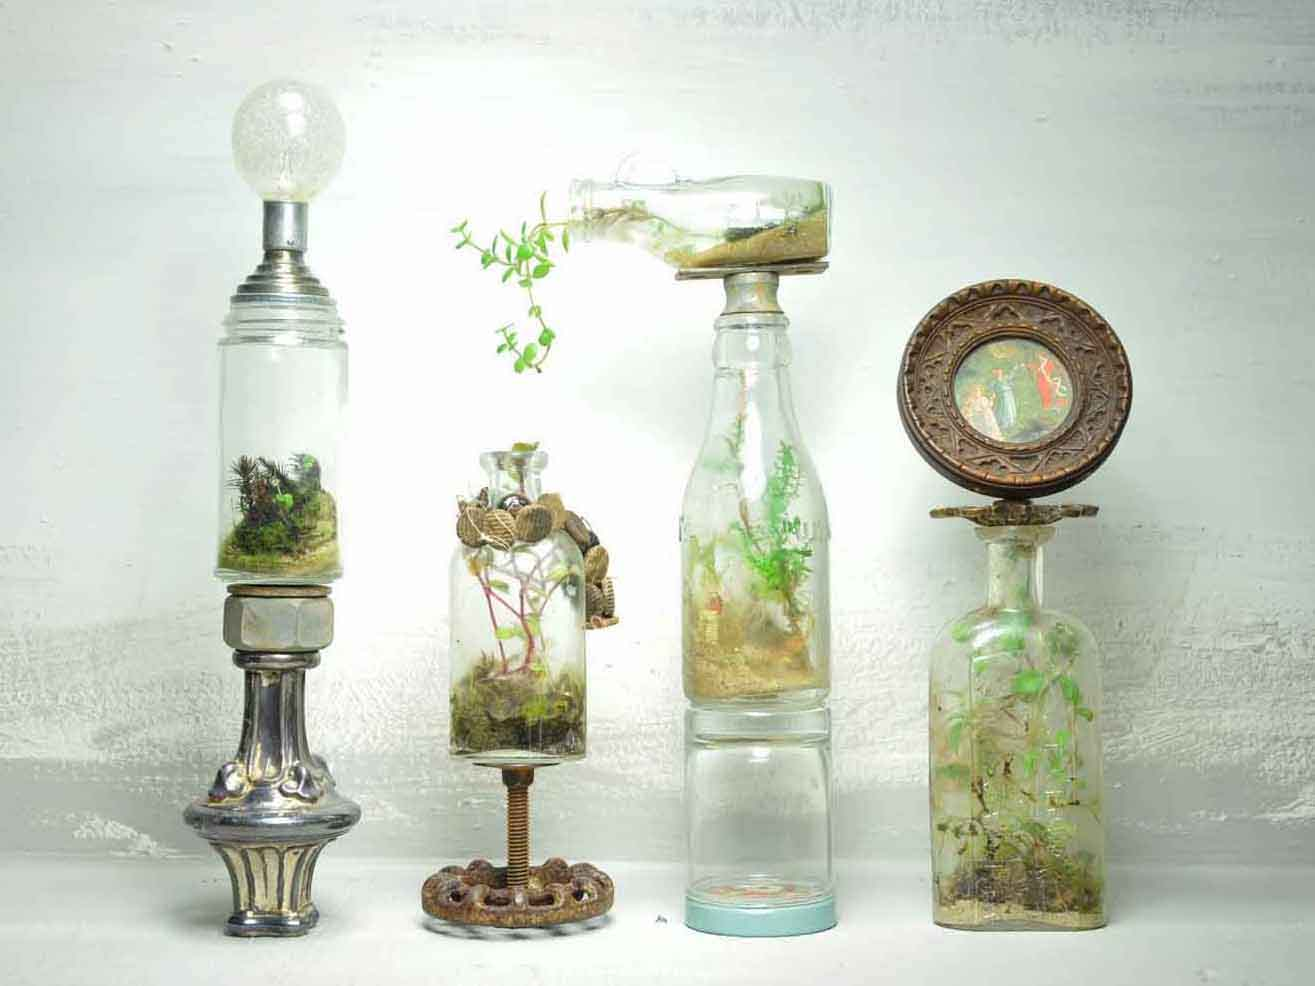 Jose Agatep S Beautiful Repurposed Bottles Terrariums Are Self Contained Ecosystems